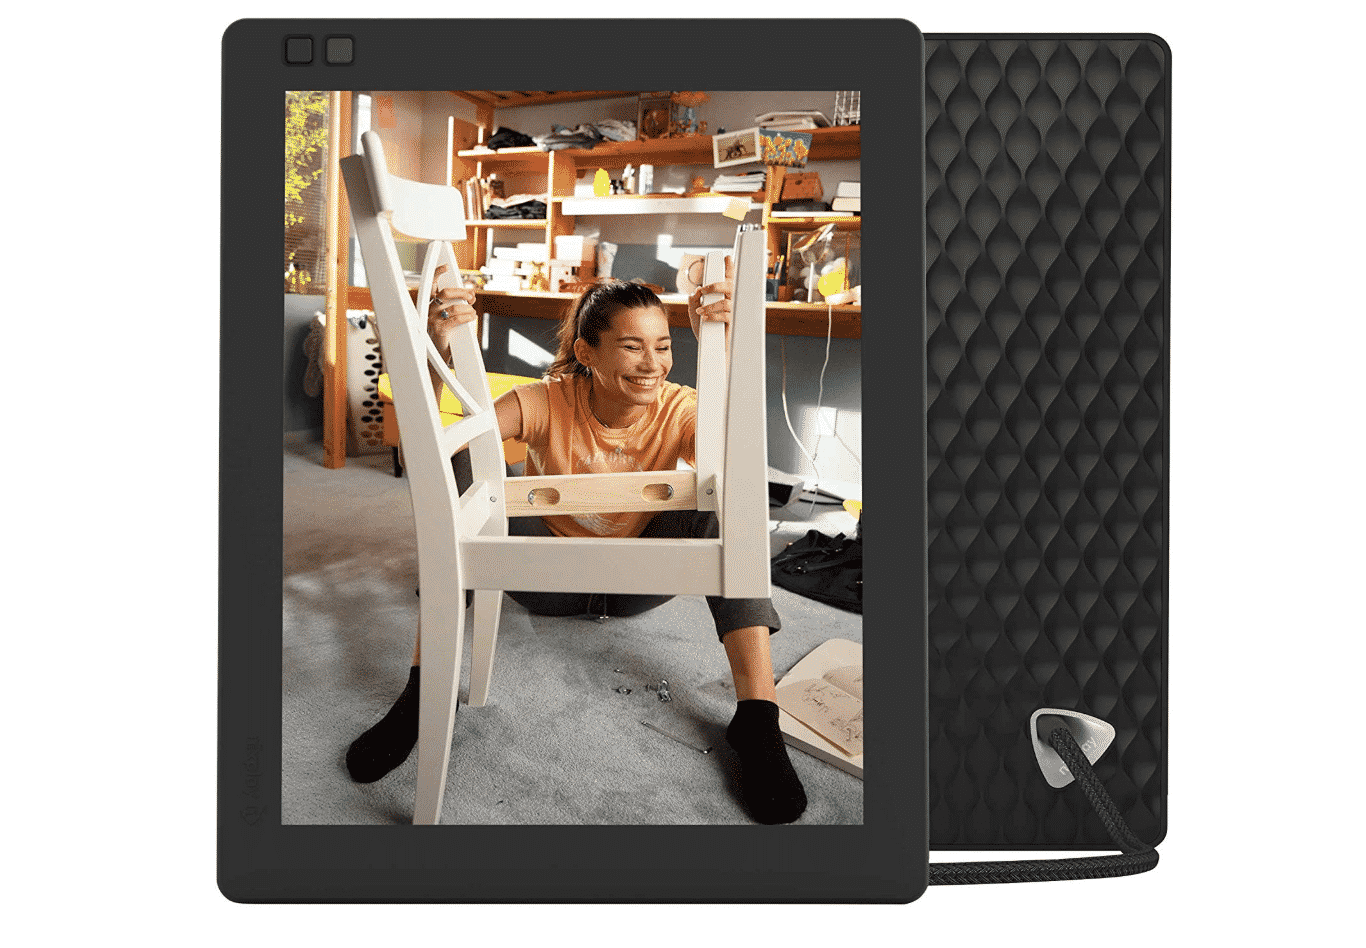 Take $63 Off When You Buy the 10-inch 2K Digital Photo Frame from NixPlay